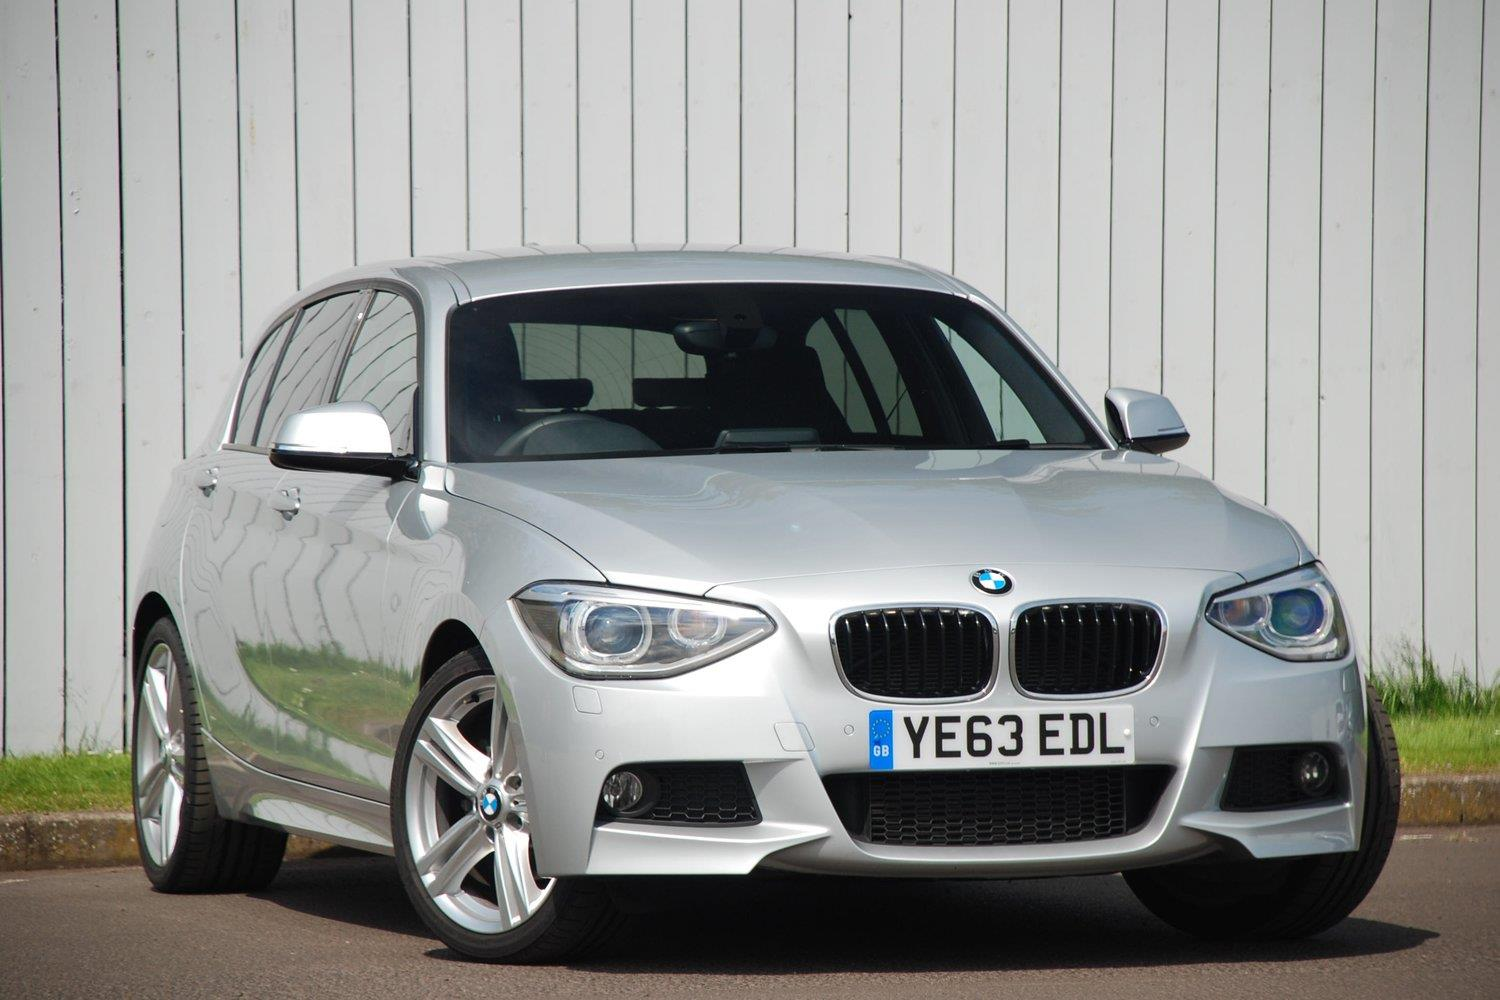 BMW 1 Series 5-door Sports Hatch YE63EDL - Image 10